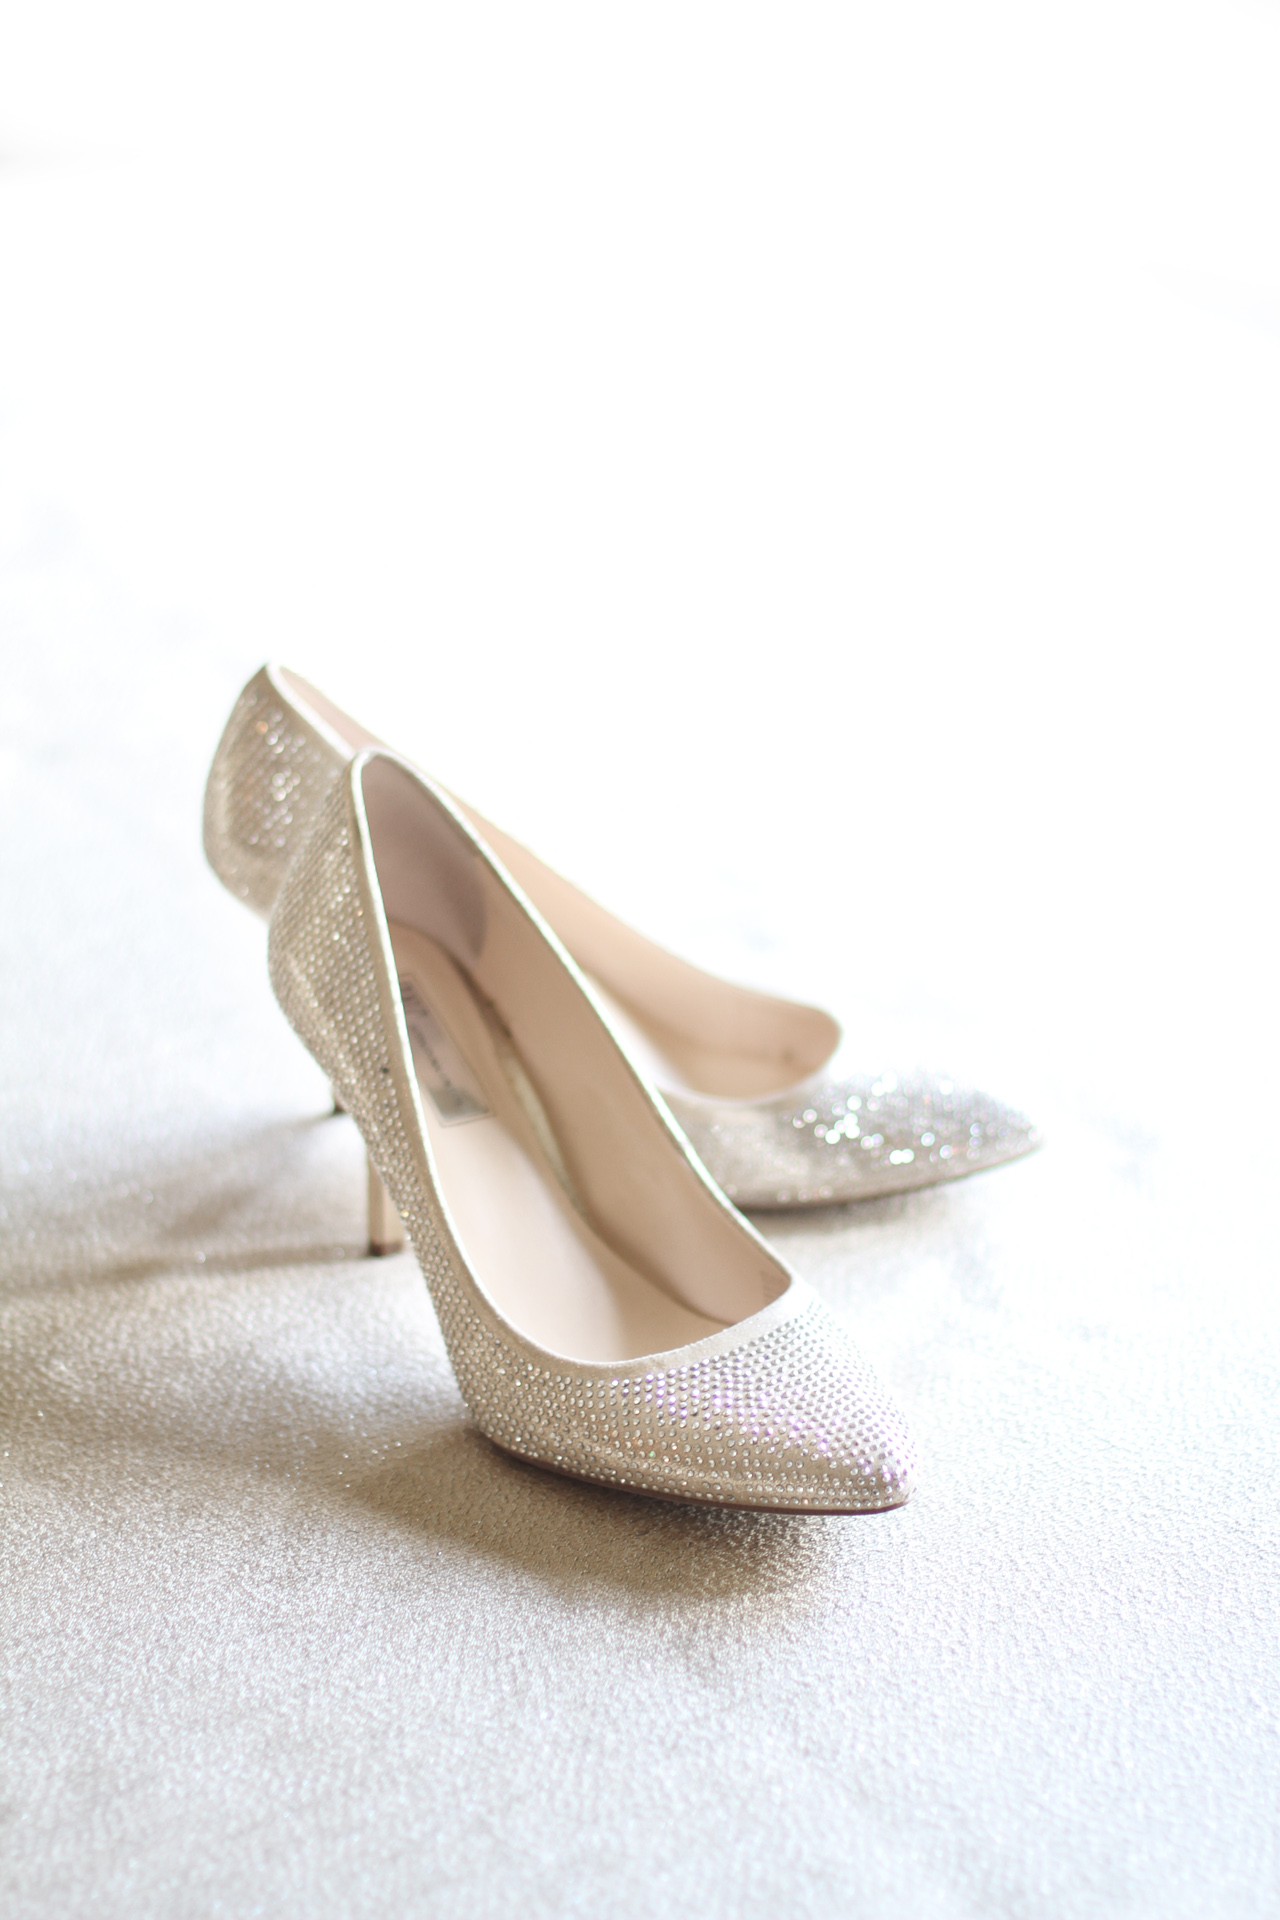 wedding-shoes-araujo